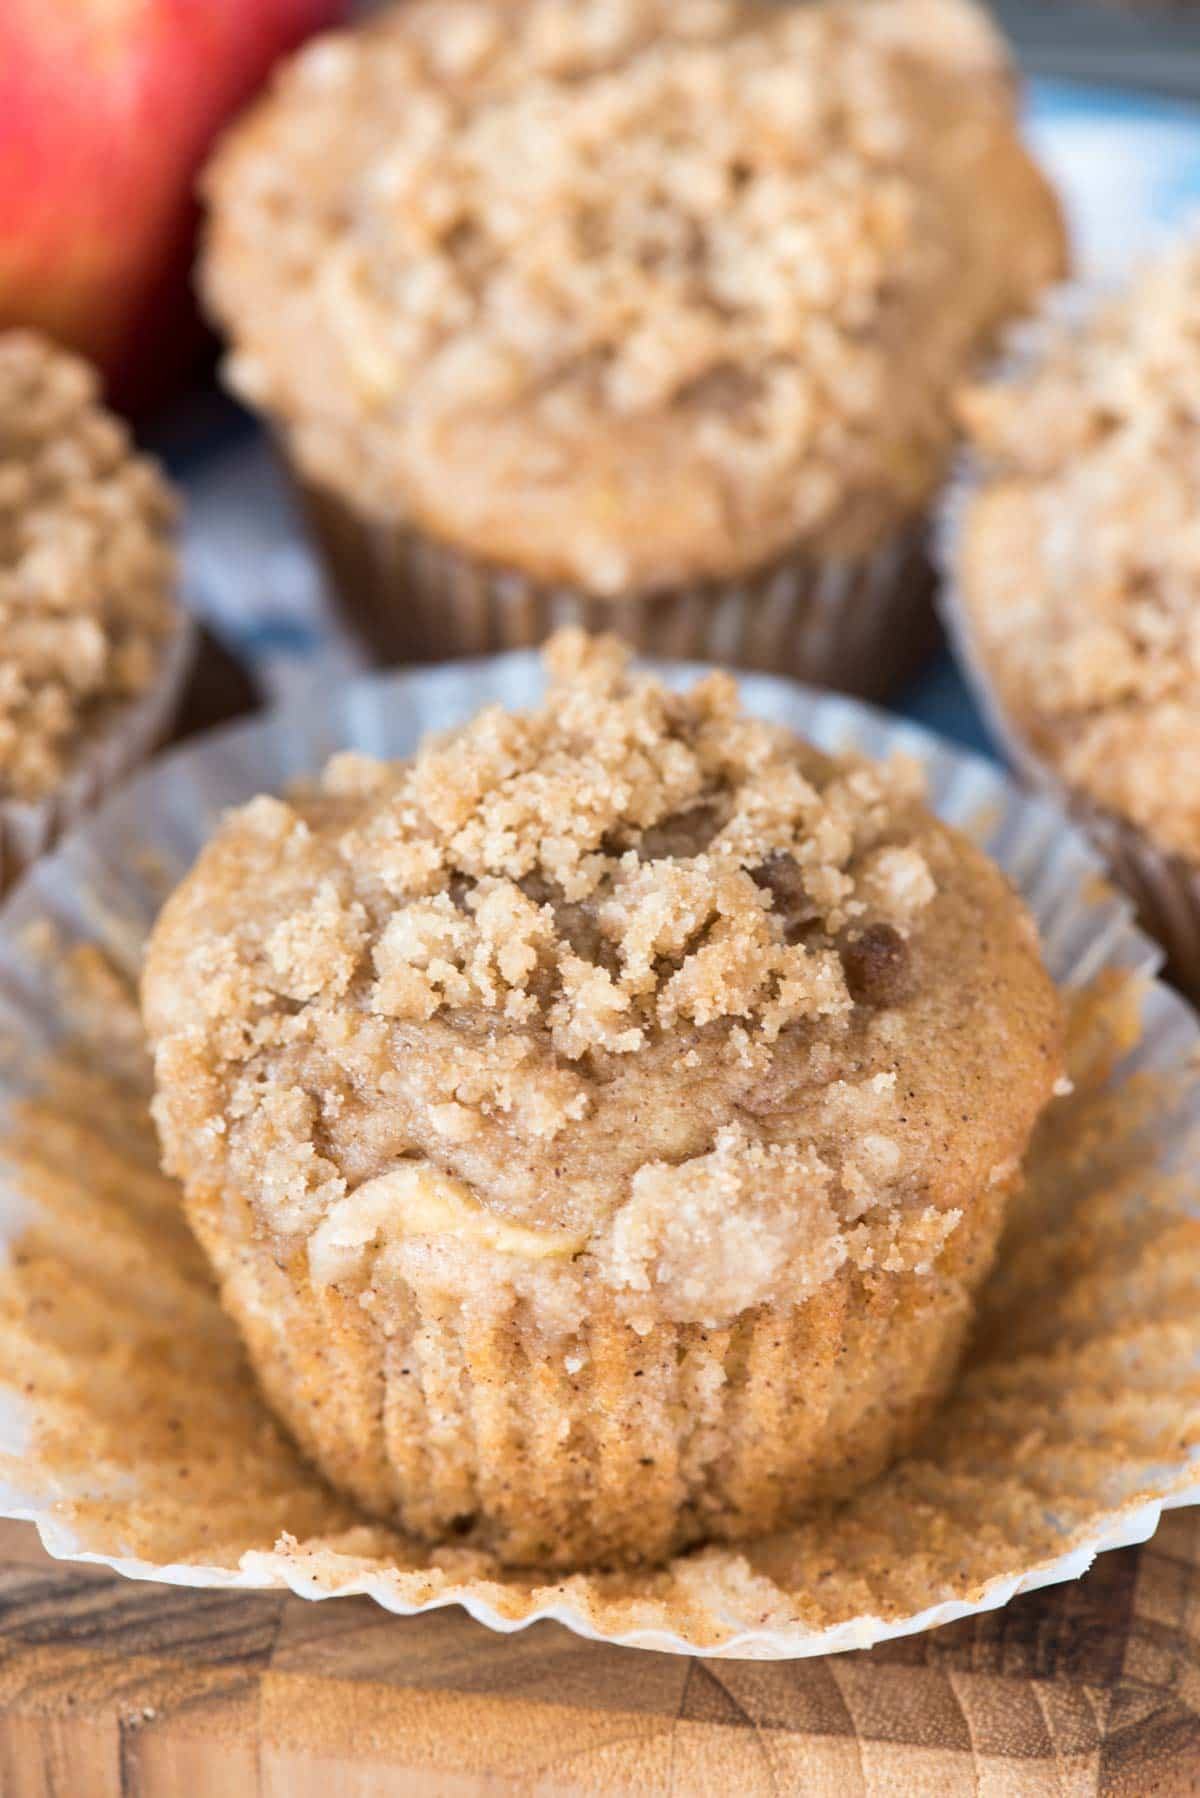 Easy Crumb Apple Muffins - the perfect fall breakfast! Simple muffins filled with cinnamon and cinnamon apples then topped with a brown sugar crumble!